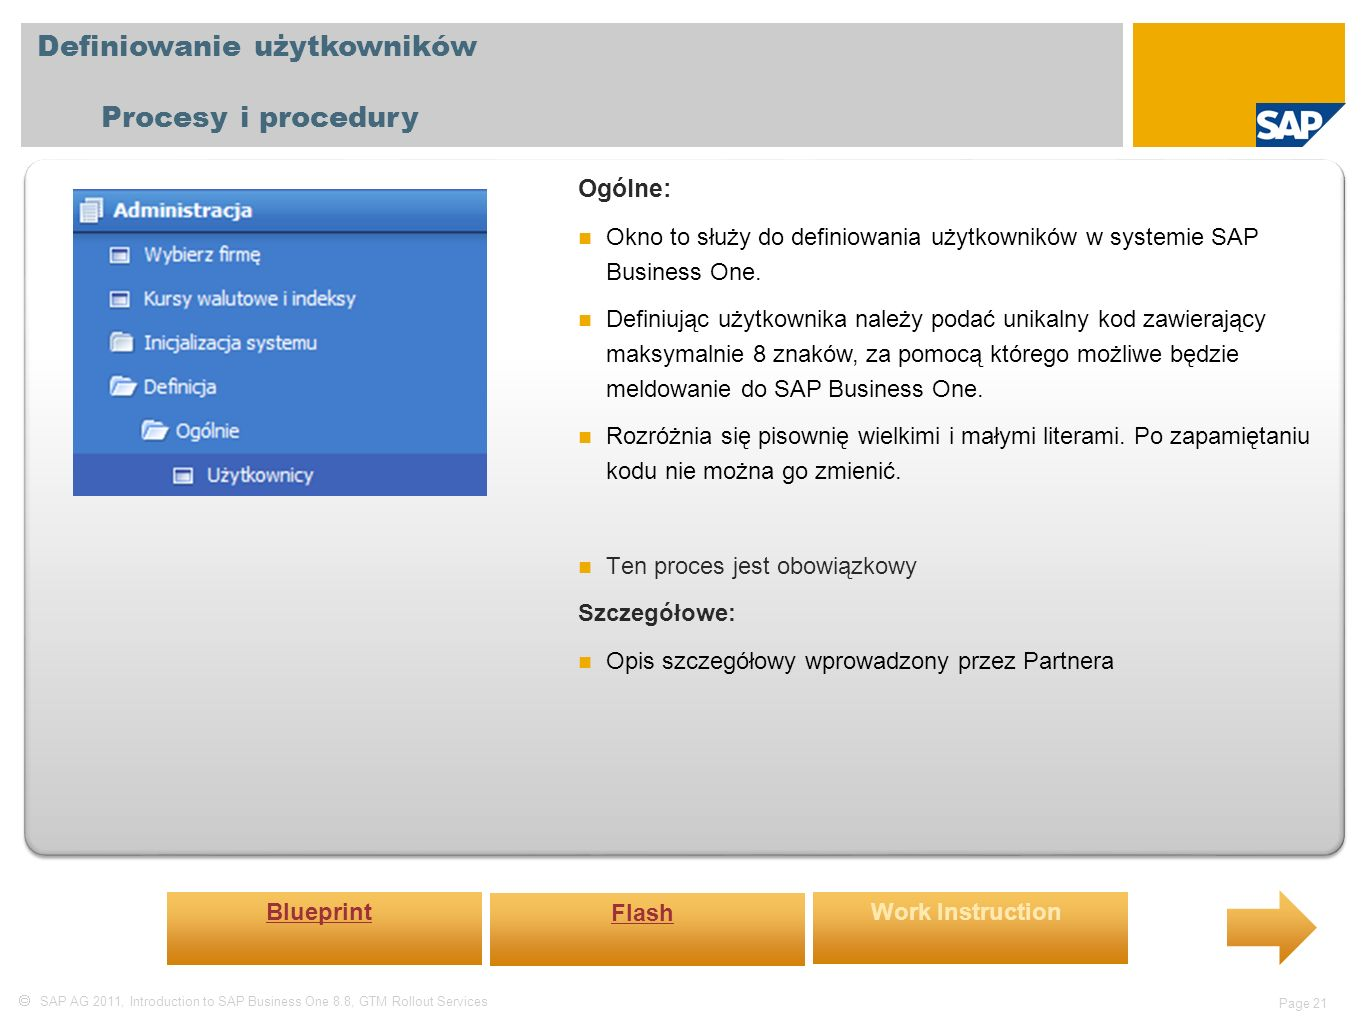  SAP AG 2011, Introduction to SAP Business One 8.8, GTM Rollout Services Page 21 Definiowanie użytkowników Procesy i procedury Ogólne: Okno to służy